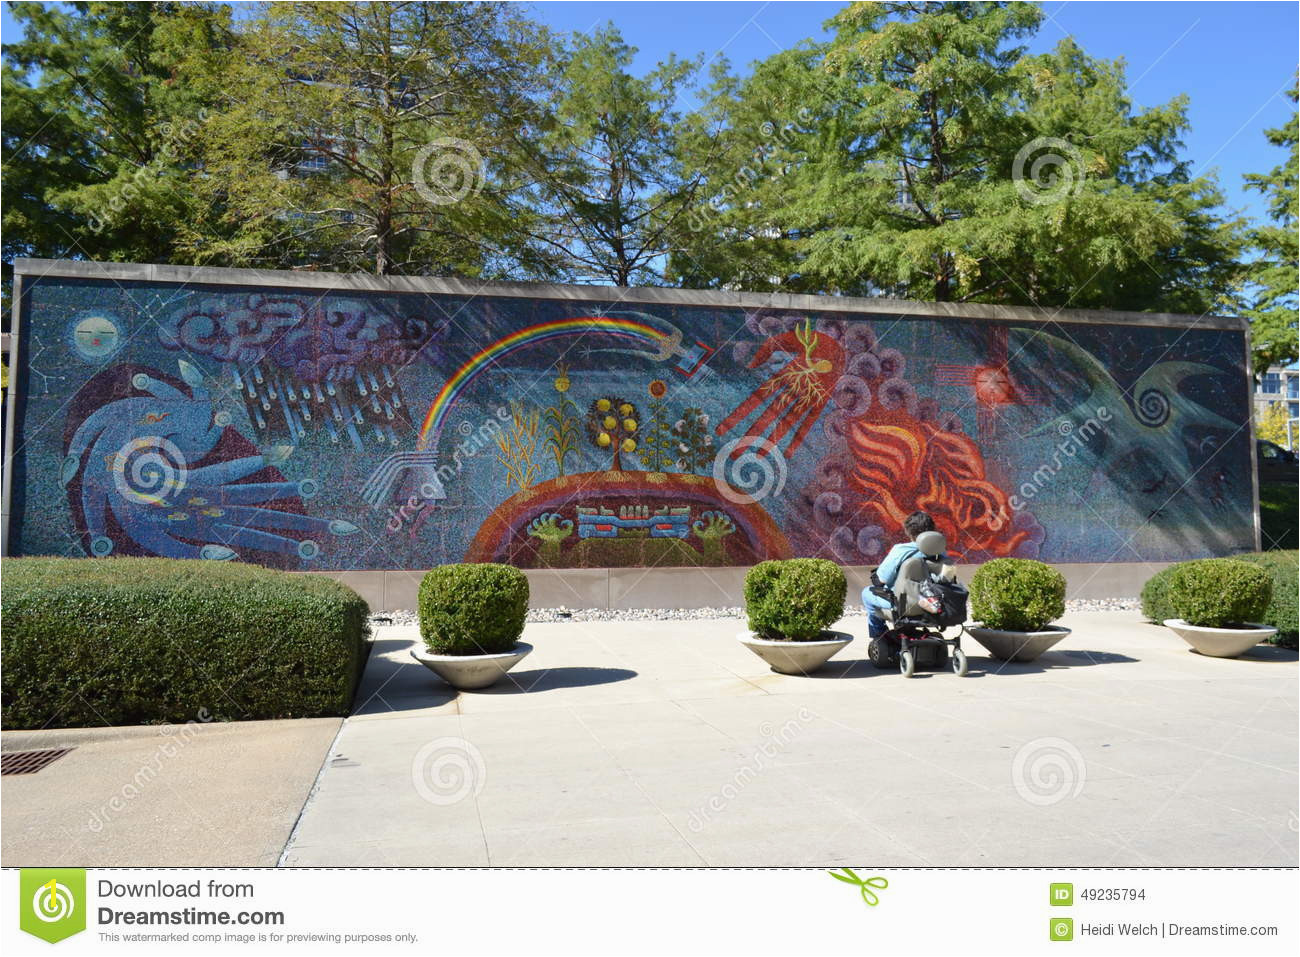 Looking at a mural painted on a wall outside the Dallas Museum of Art one person in a wheelchair can be seen studying the mural